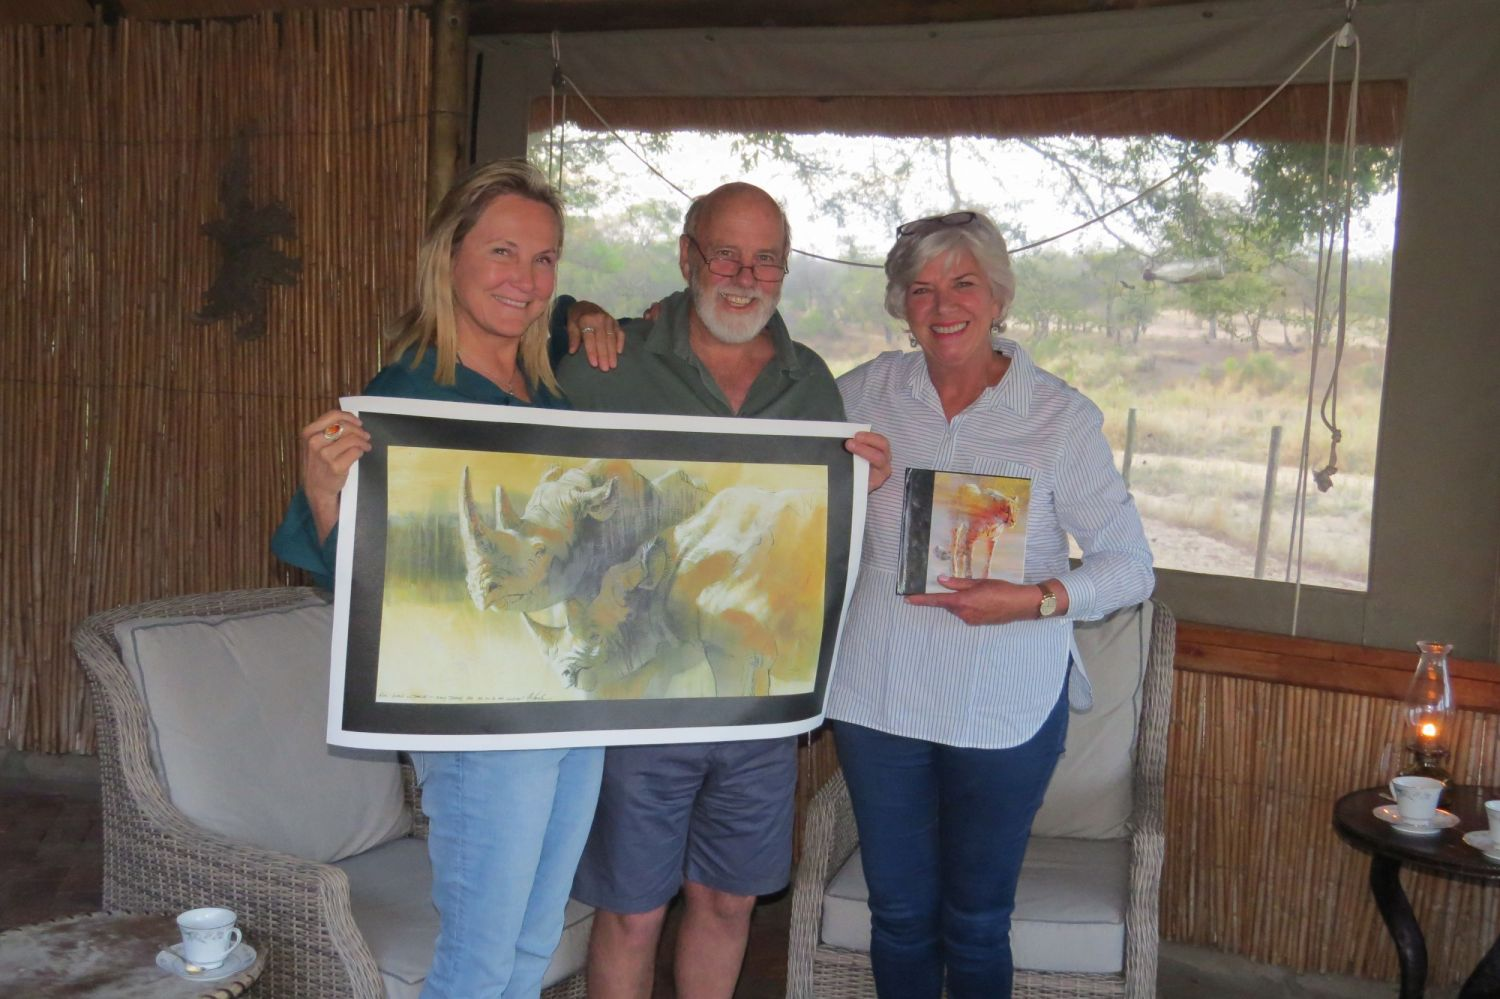 While in South Africa we met Charles and Inga Devillers